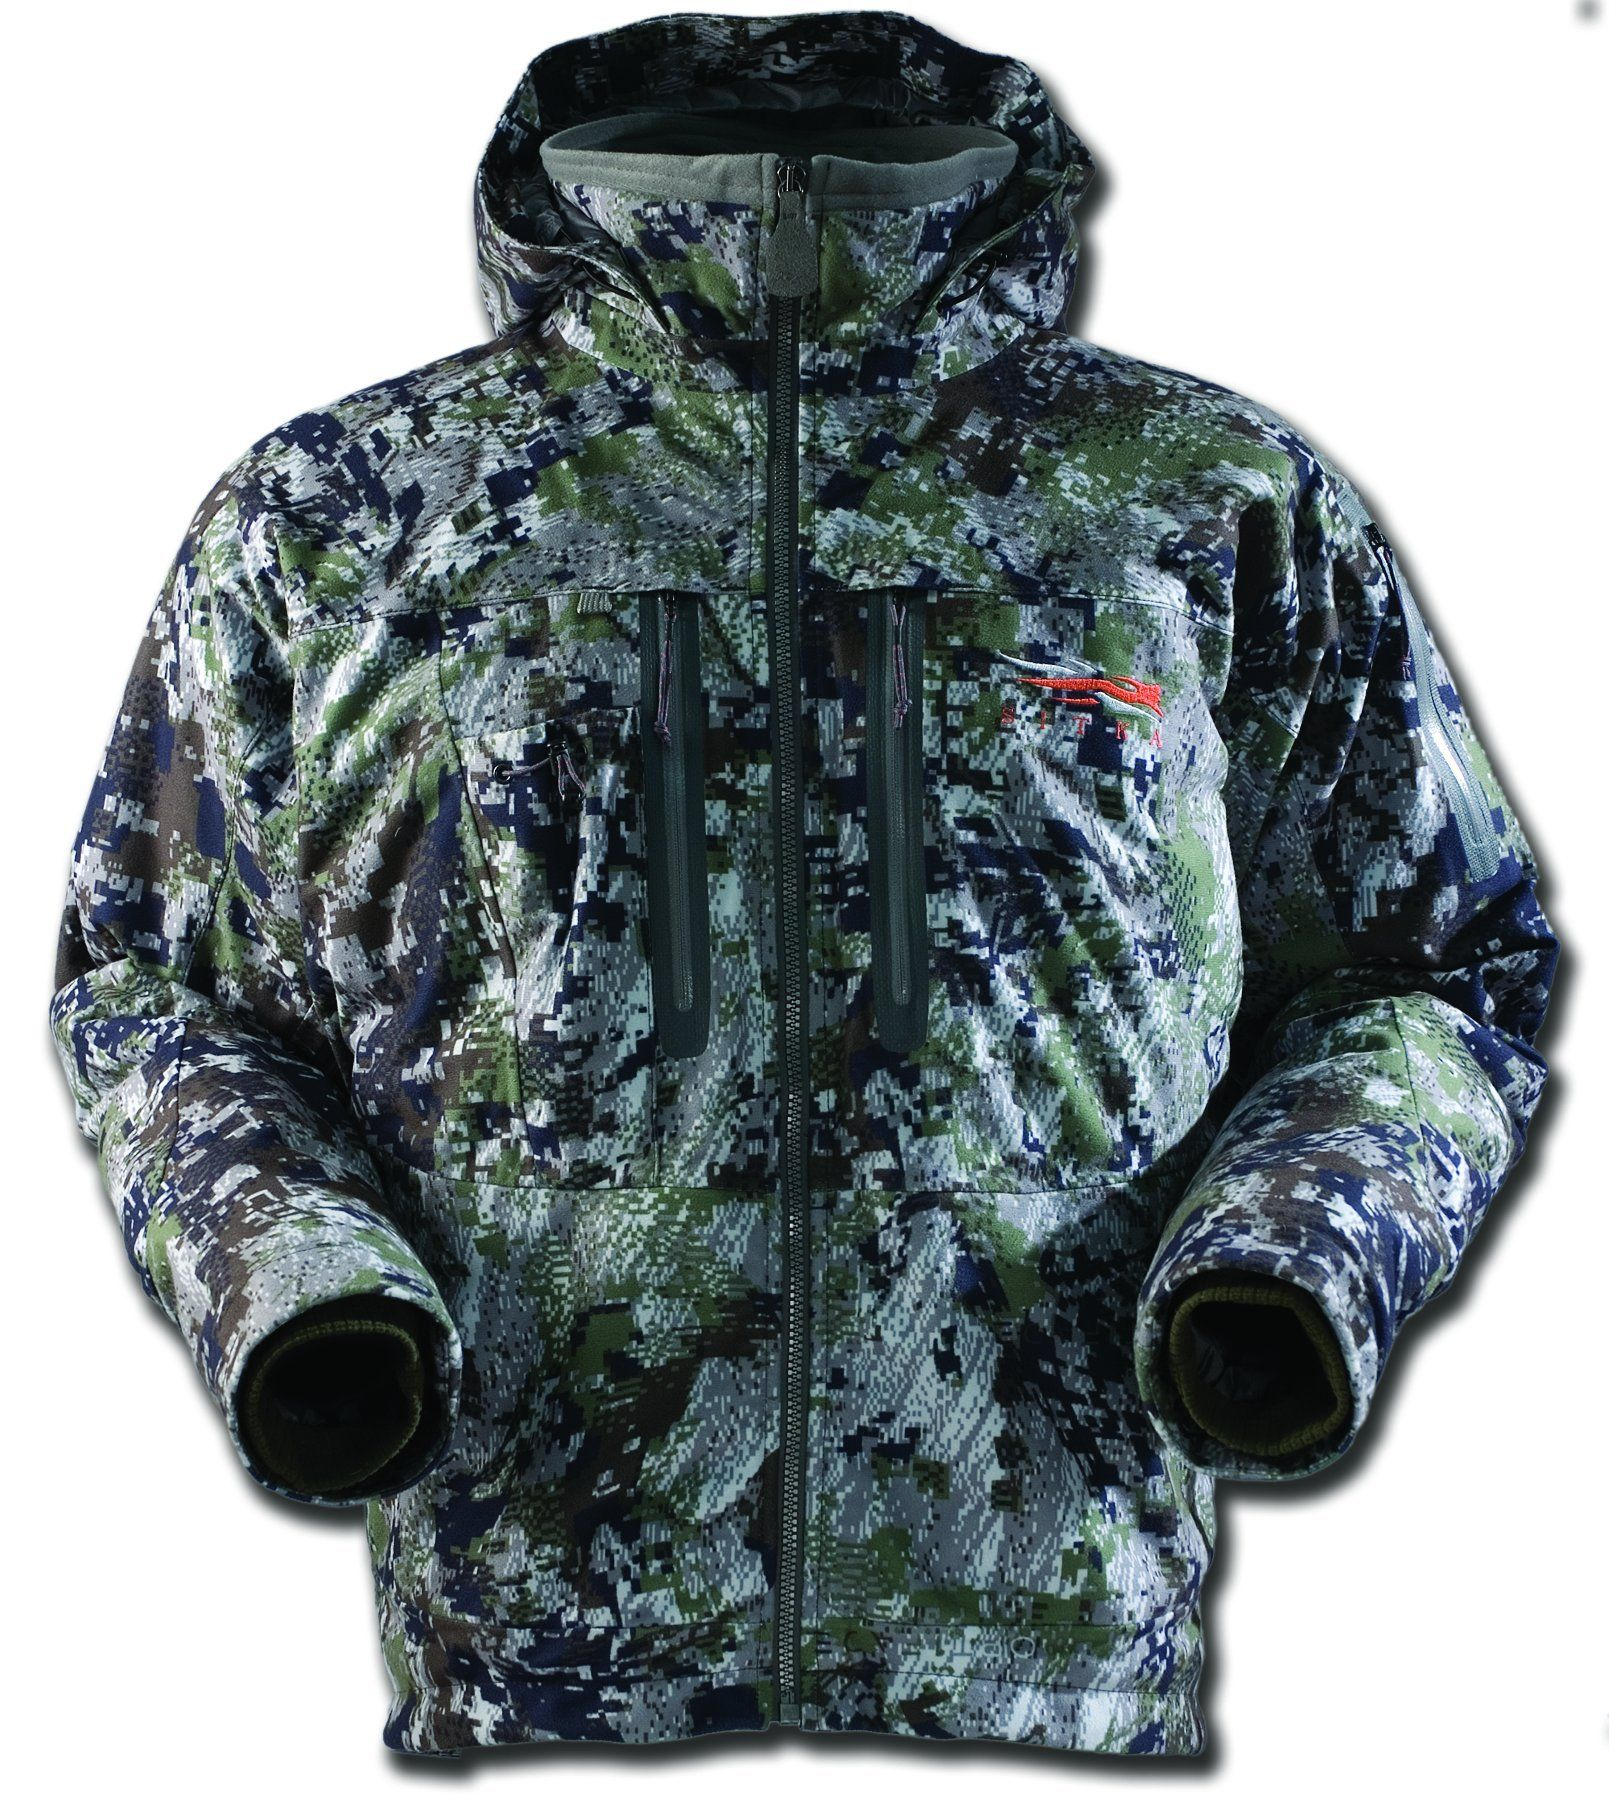 5f1c0f6c661 Amazon.com   Sitka Gear Men s Incinerator Insulated Jacket   Camouflage Hunting  Apparel   Sports   Outdoors